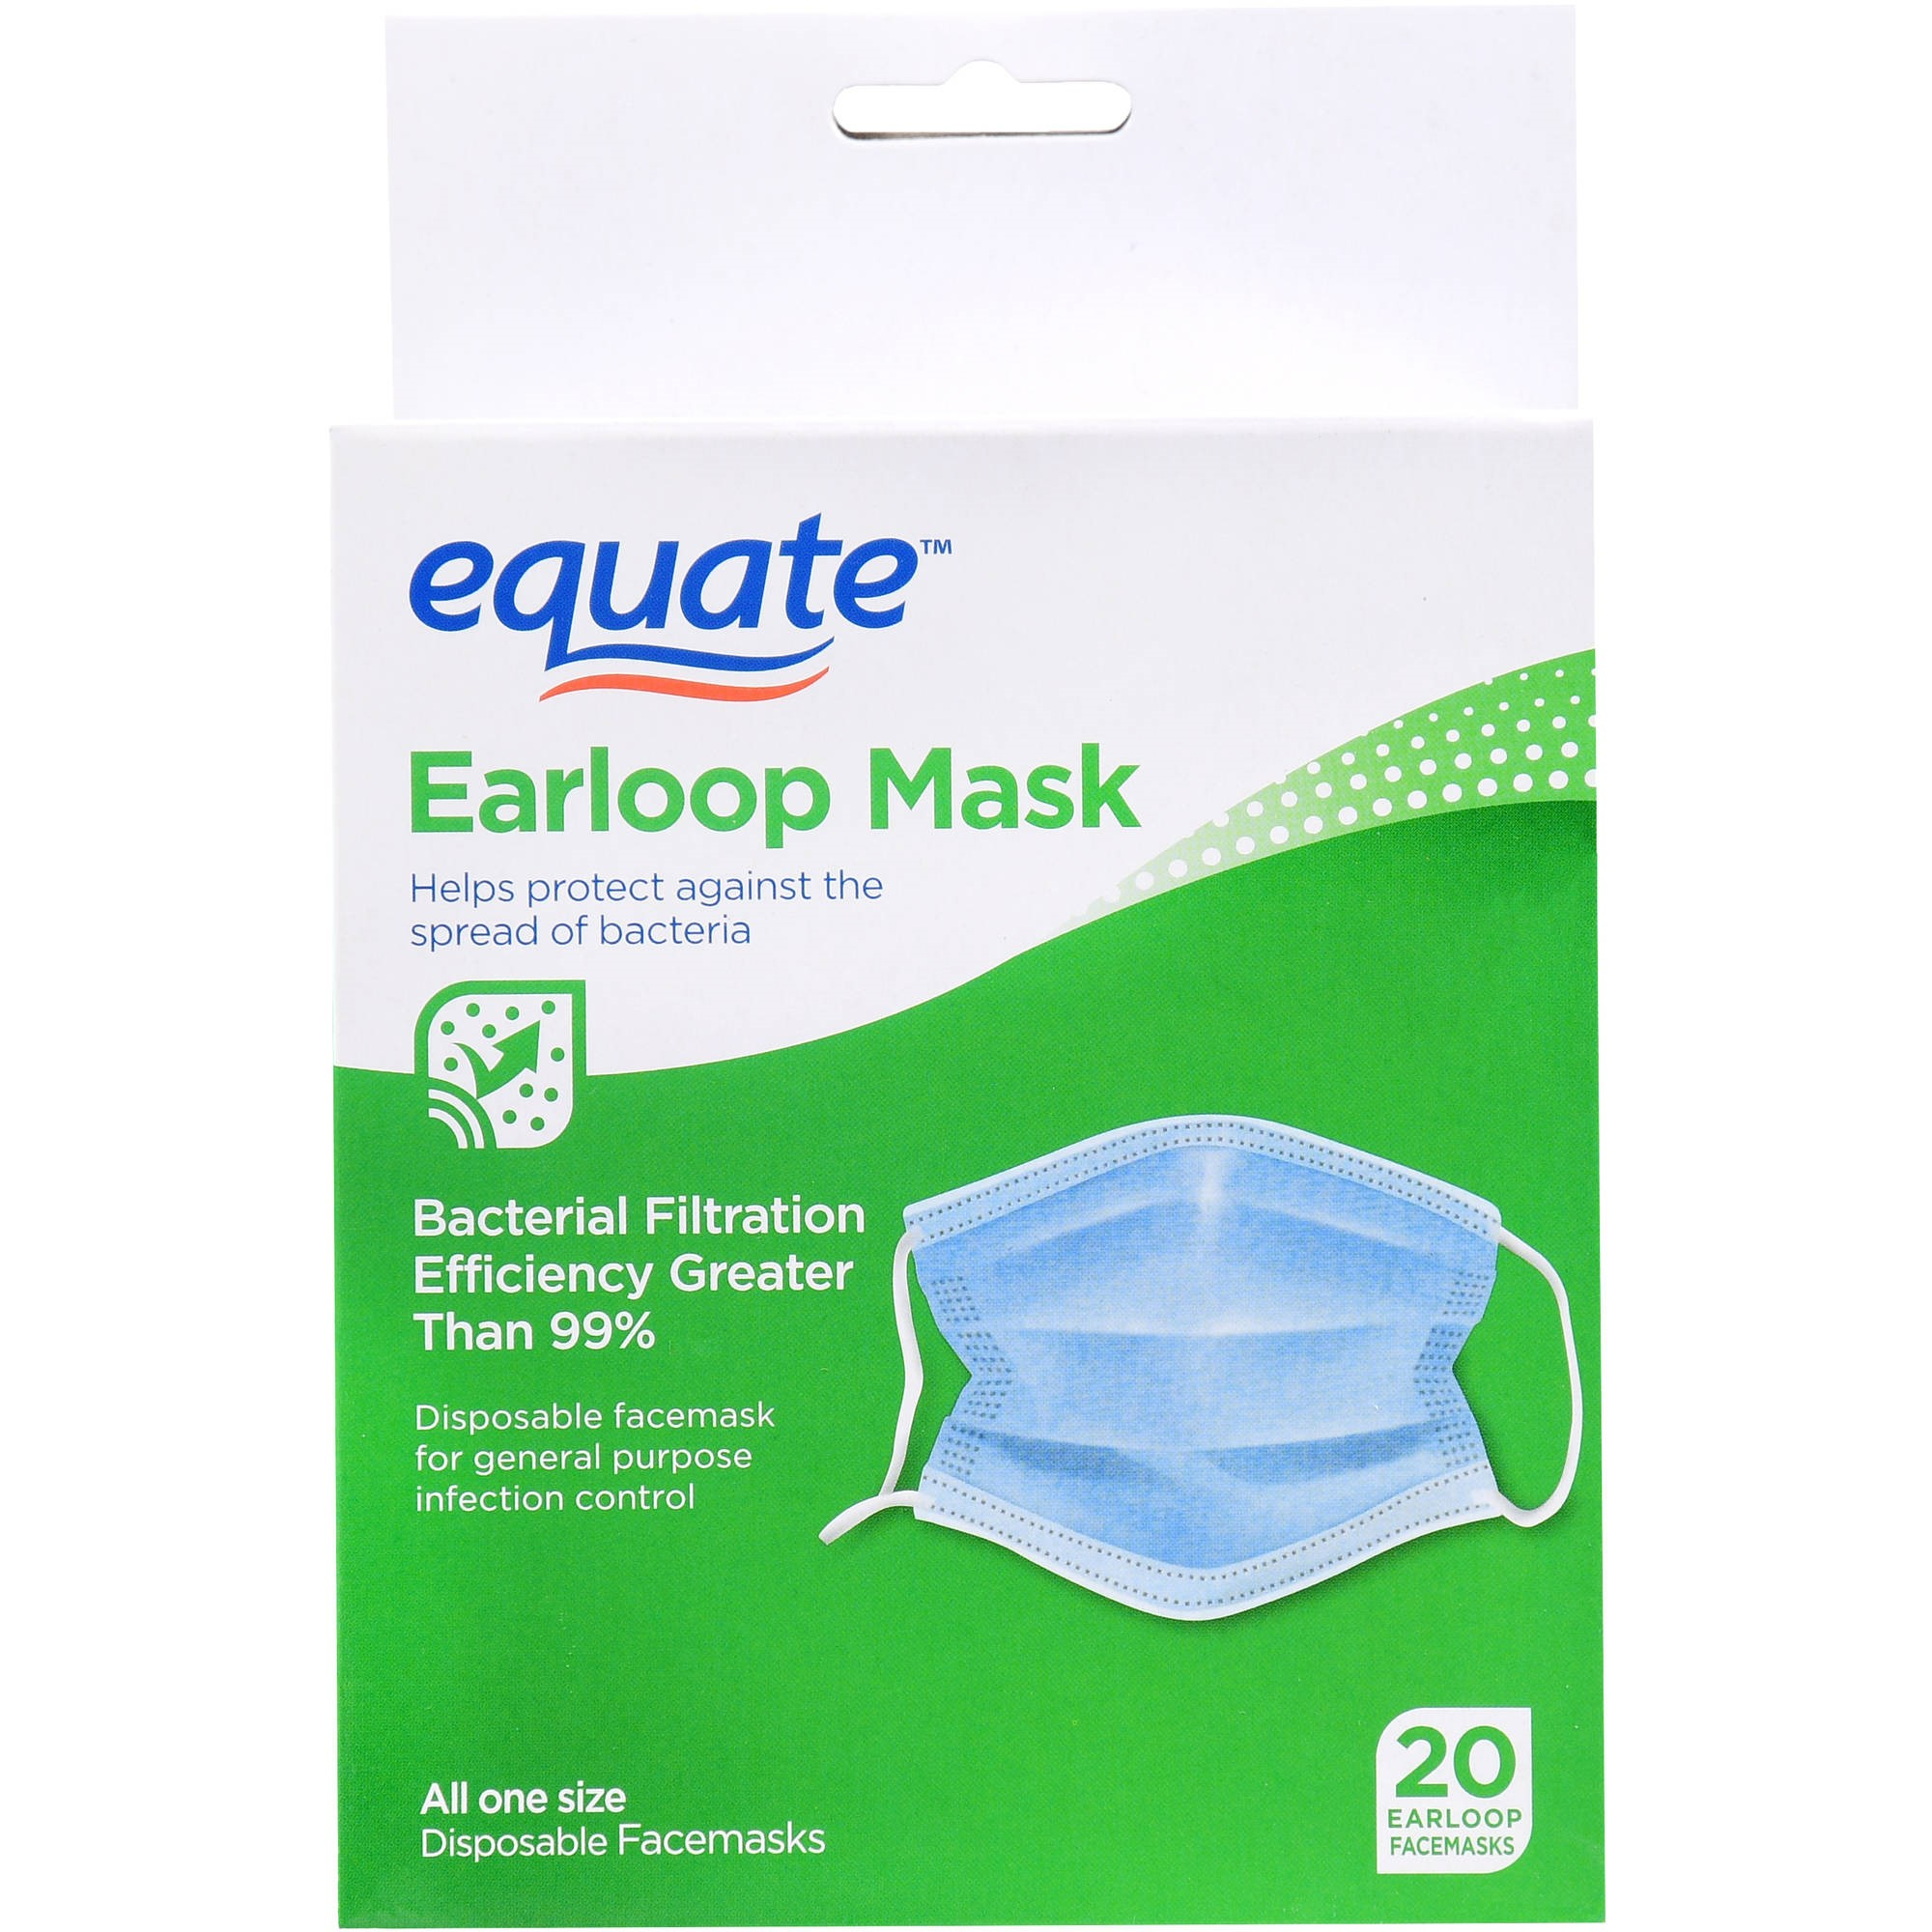 Equate Earloop Mask Disposable Mask, 20 Ct by Wal-Mart Stores, Inc.